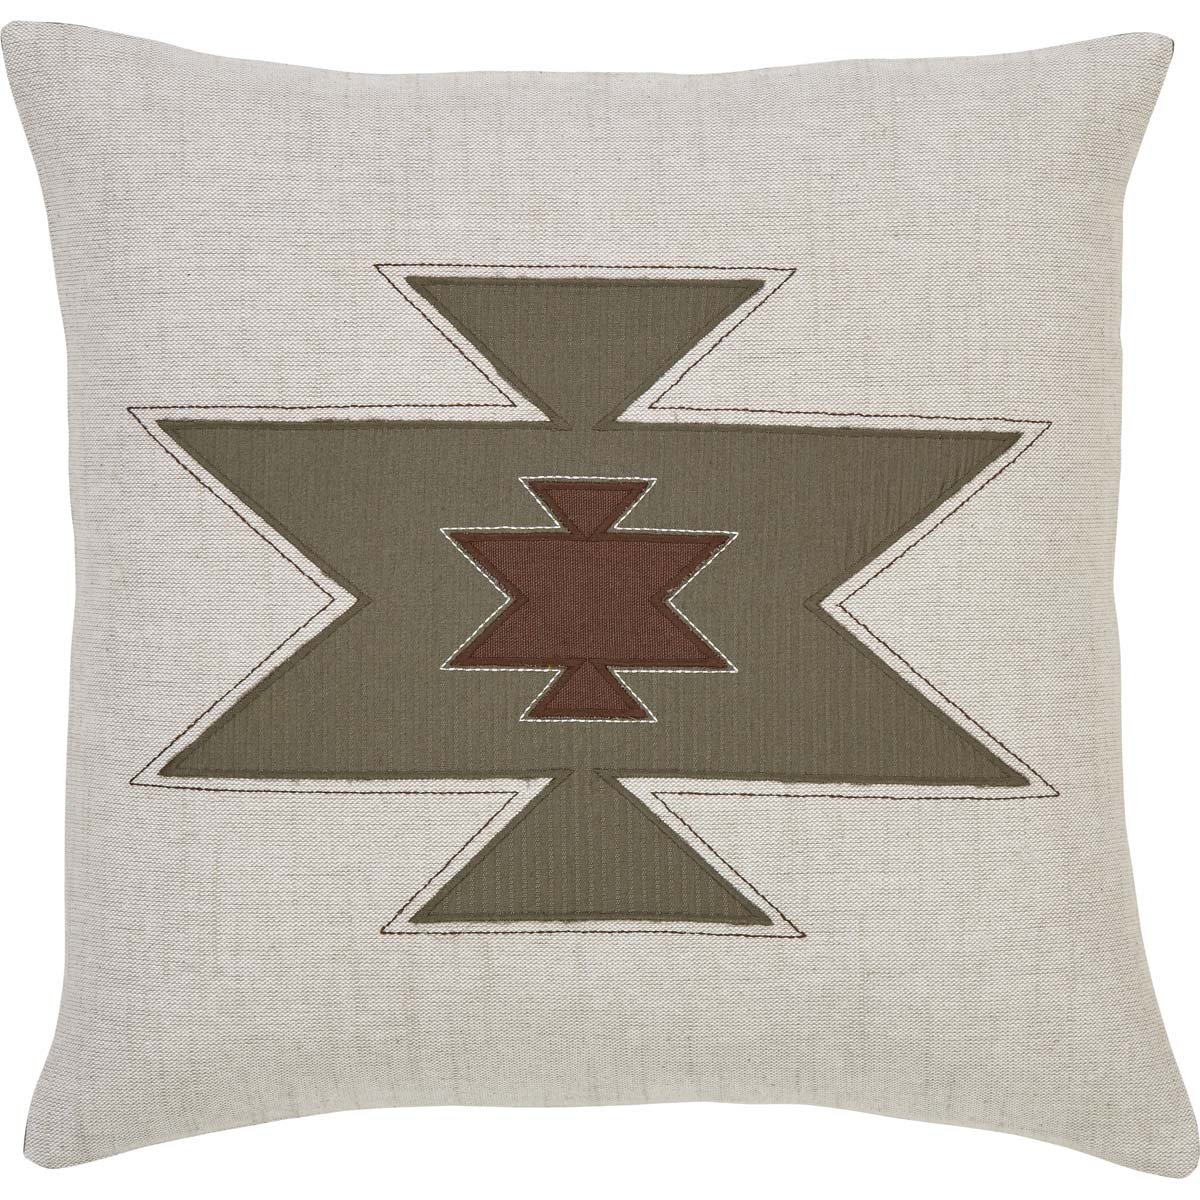 Roswell Pillow Cover 18x18